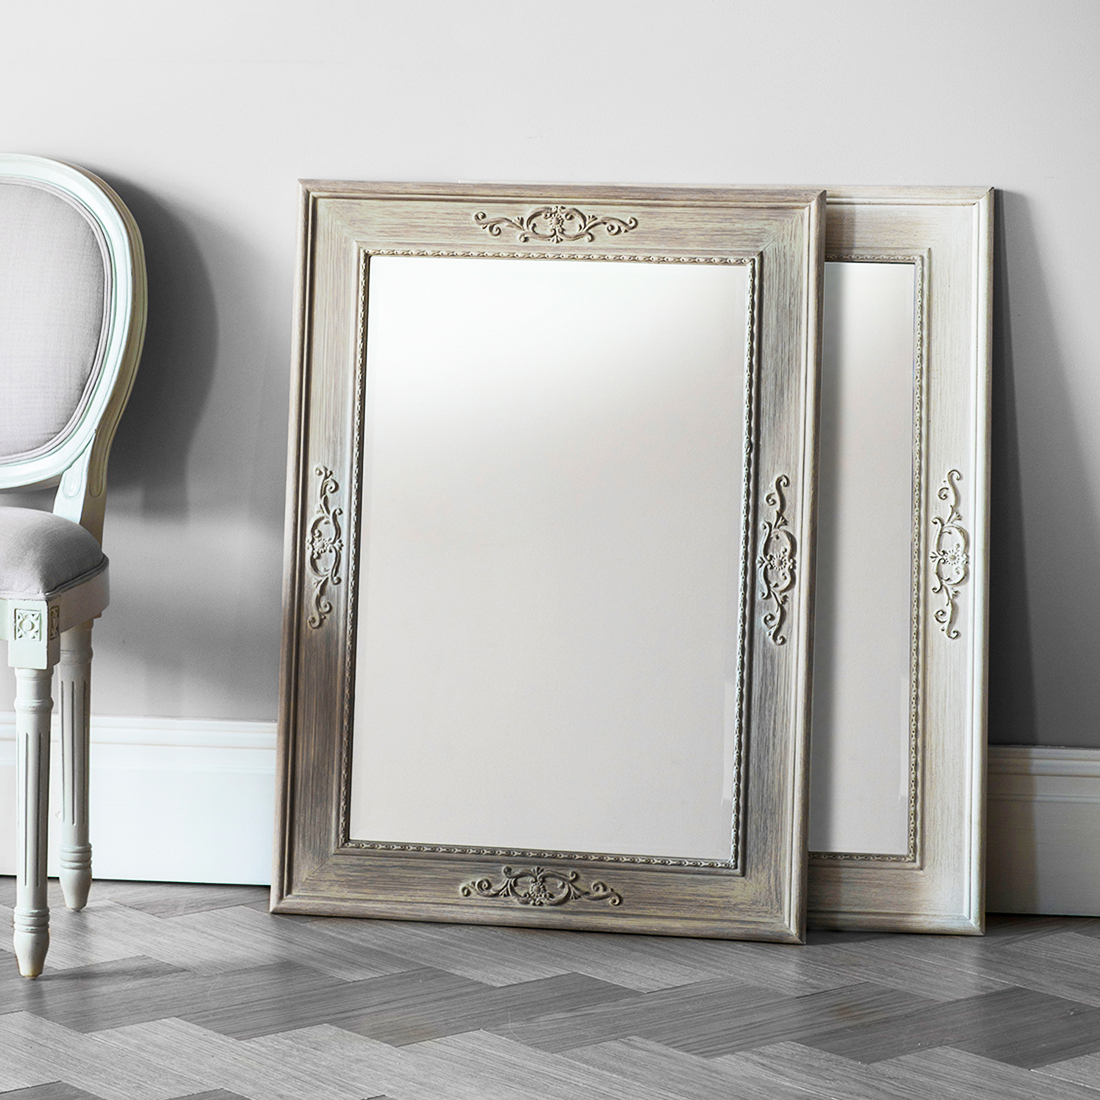 Wood Wall Mirrors Pertaining To Famous Decorative Rectangular Wooden Wall Mirrors – White Or Limed Oak (View 16 of 20)